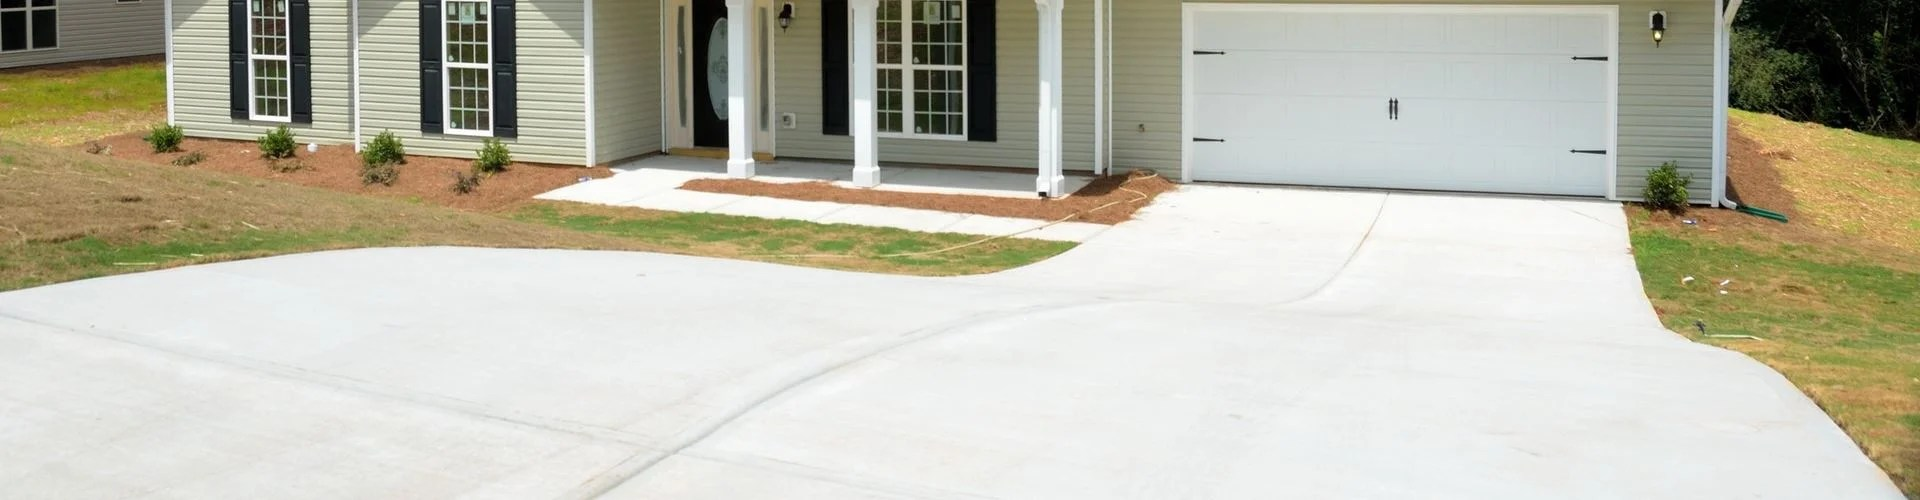 how to remove mildew from concrete